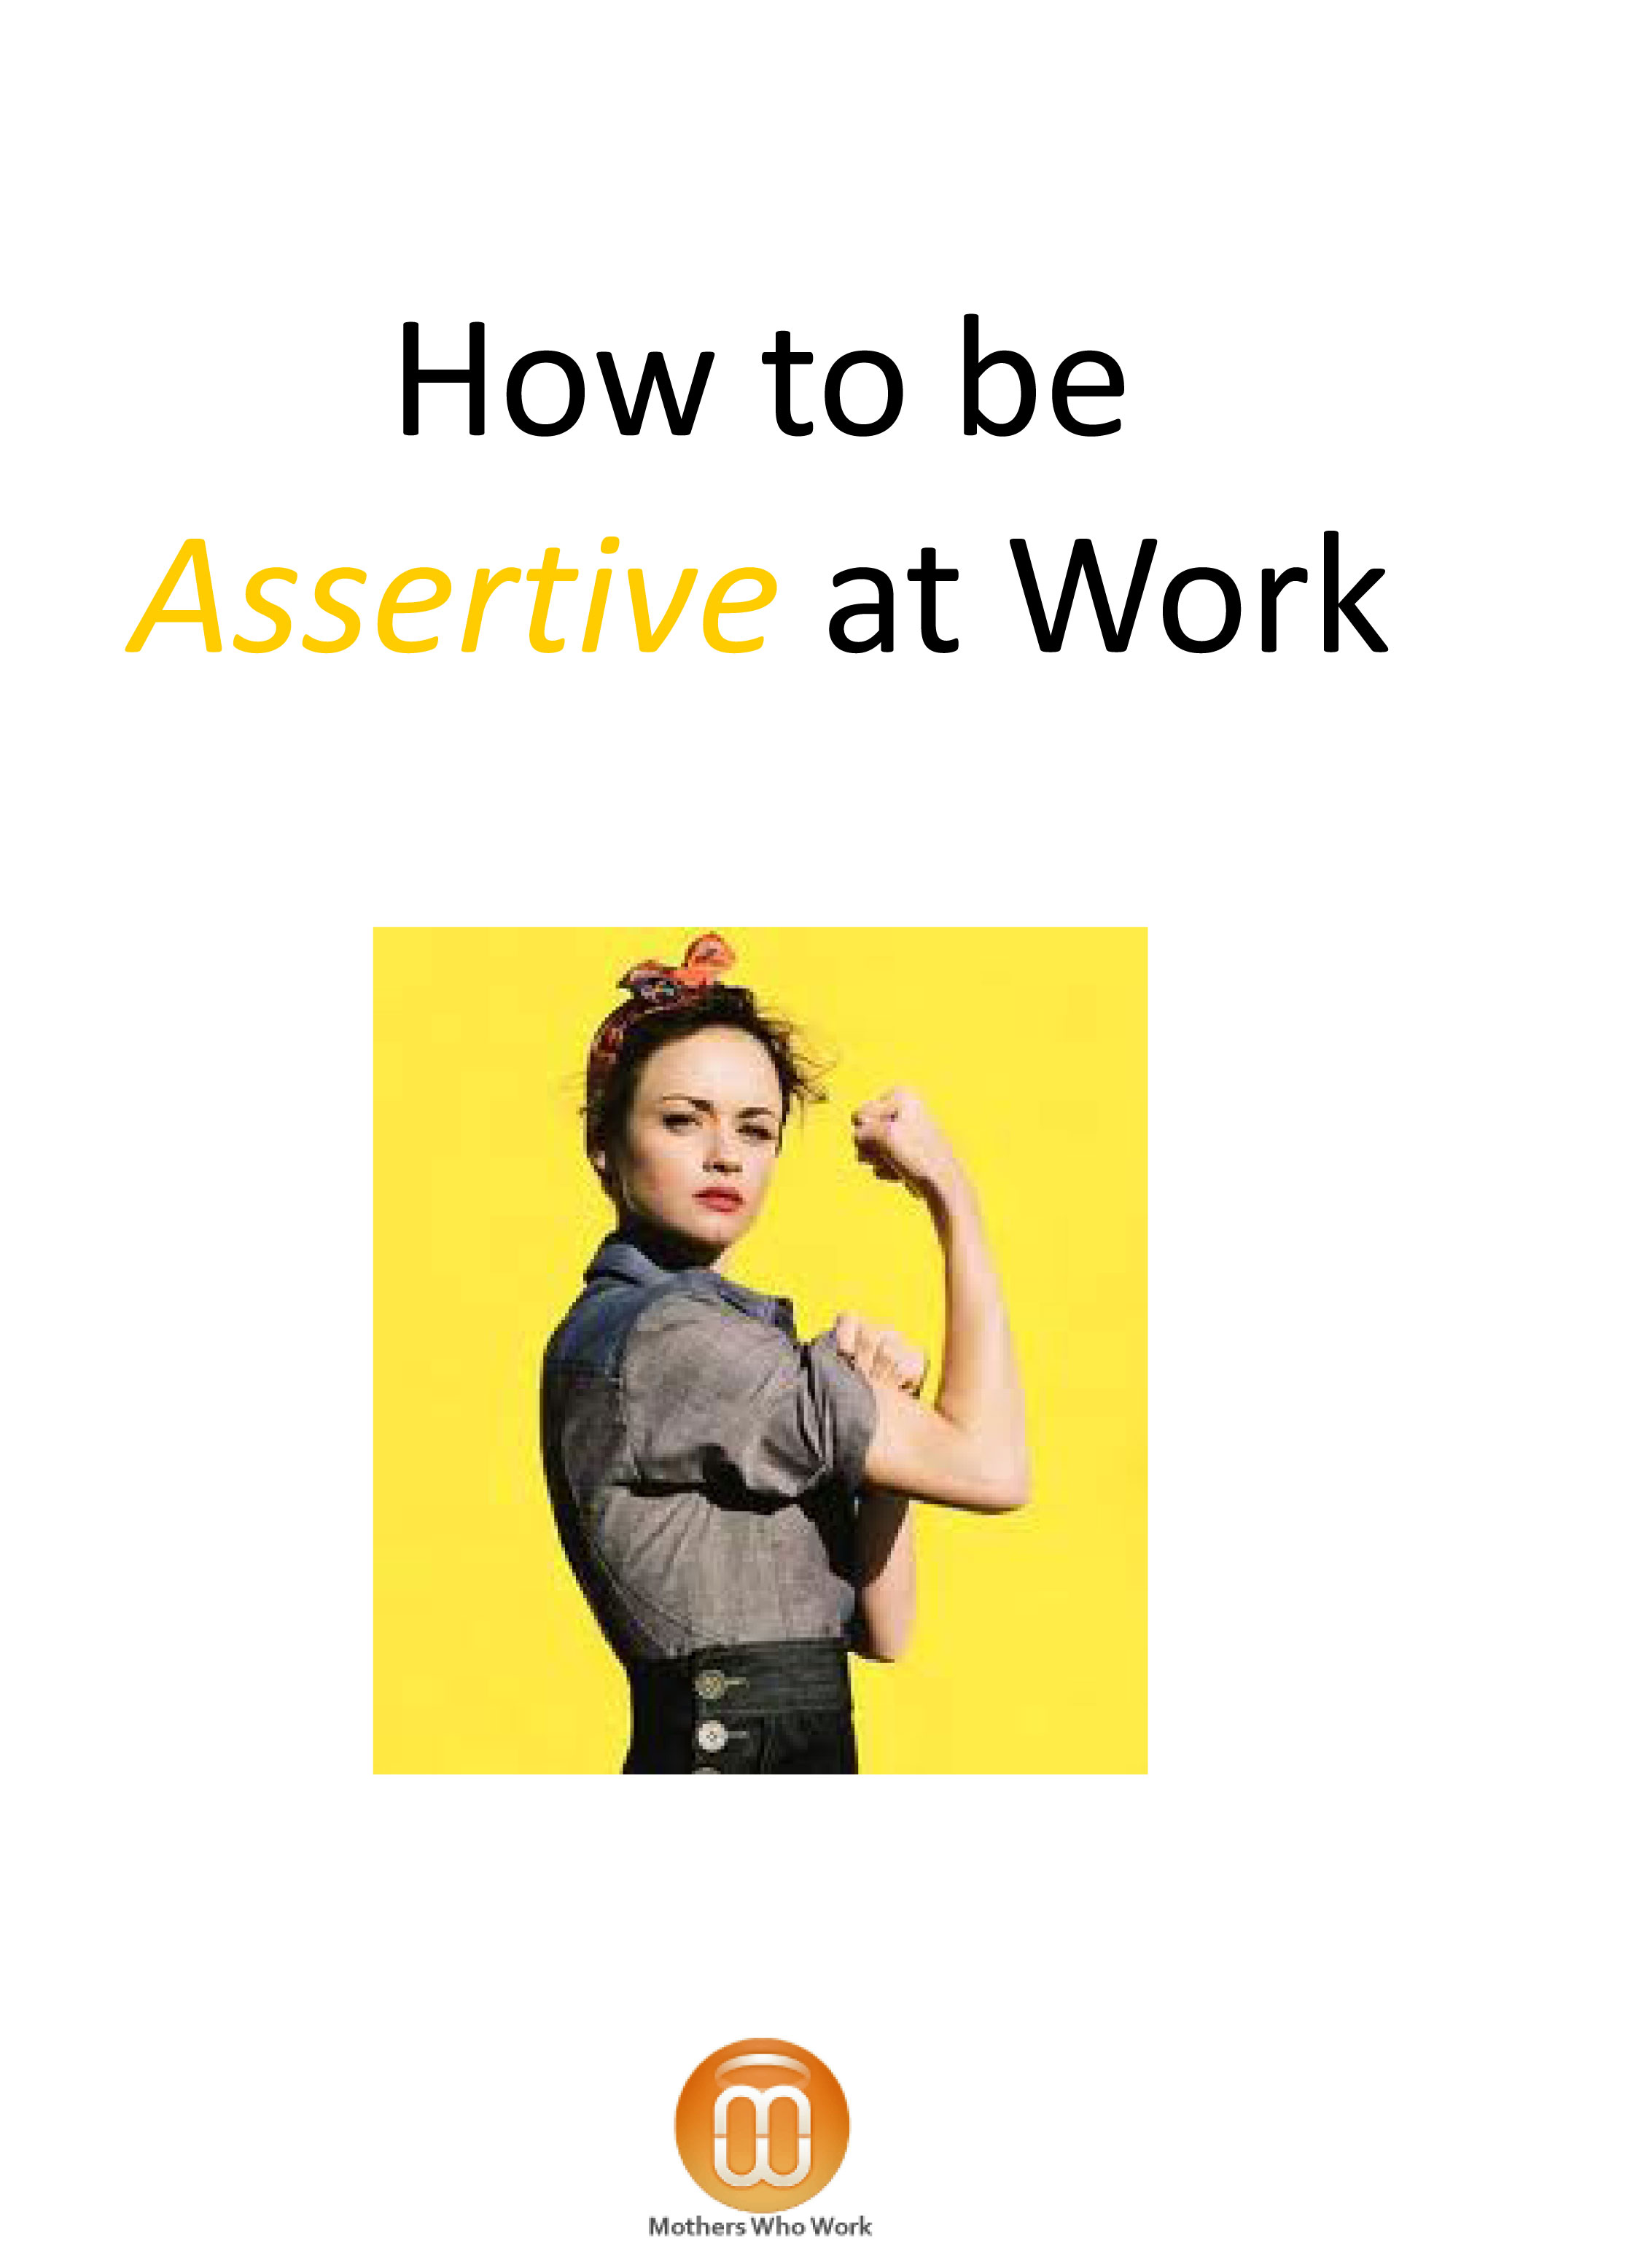 Being assertive at work and standing up for yourself can help make life a lot easier